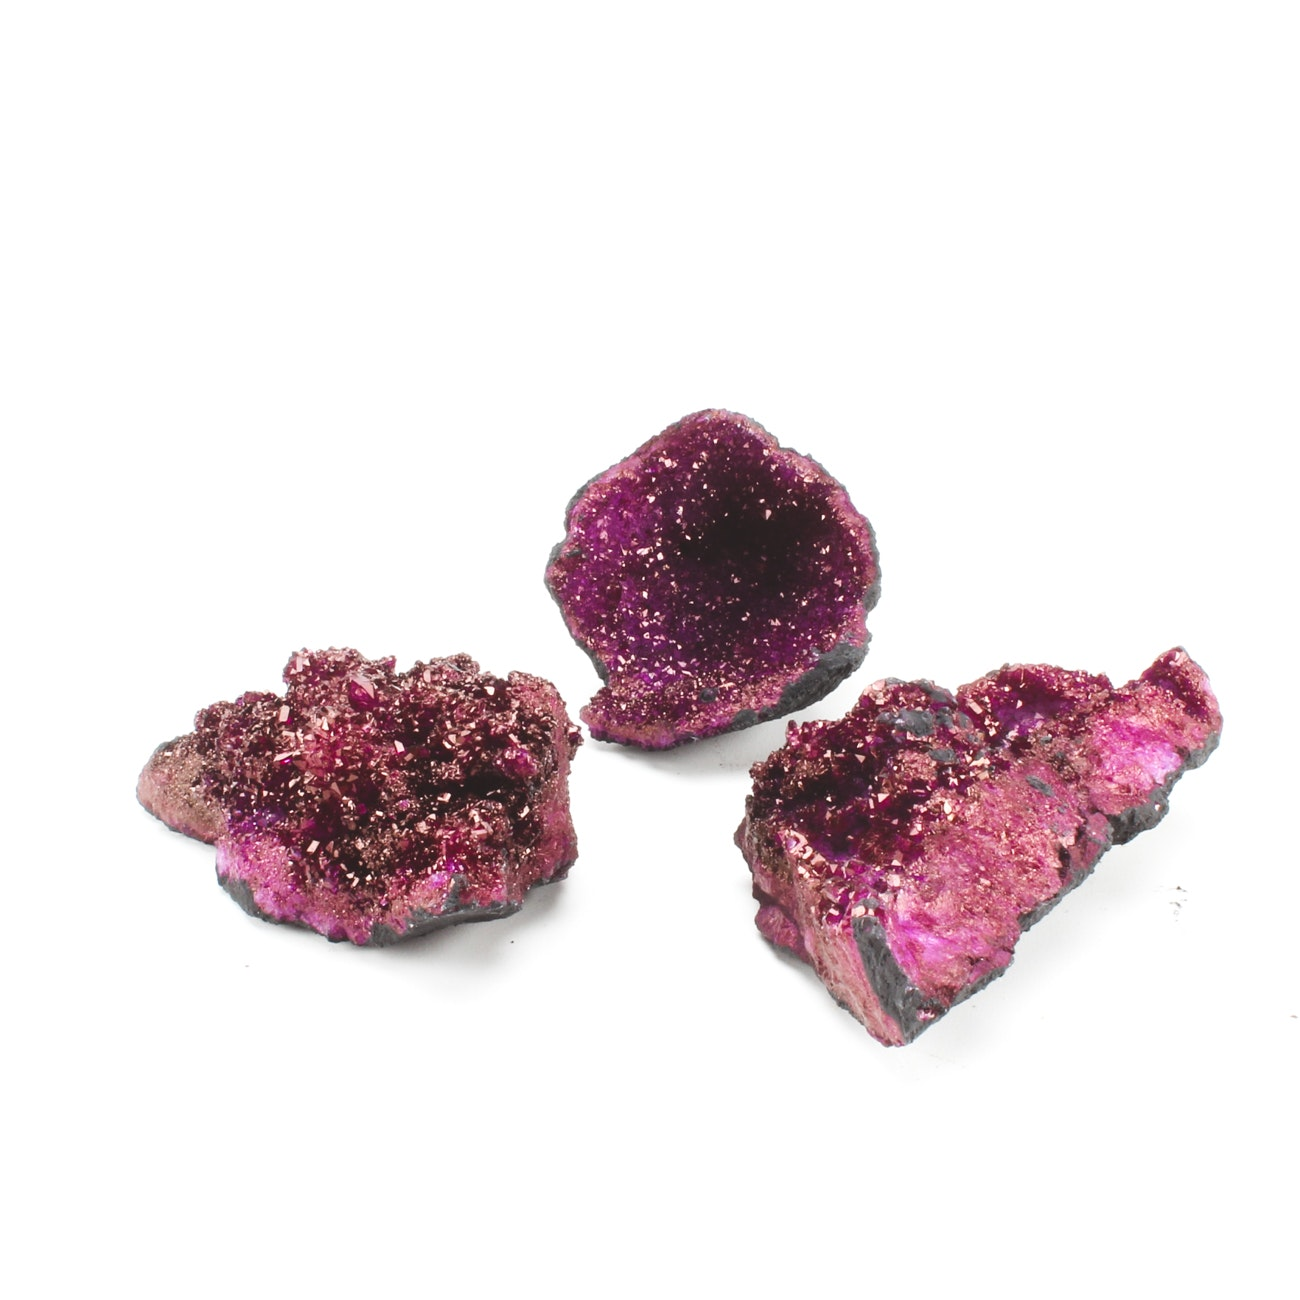 Grouping of Three Purple Dyed Quartz Crystal Moroccan Geodes